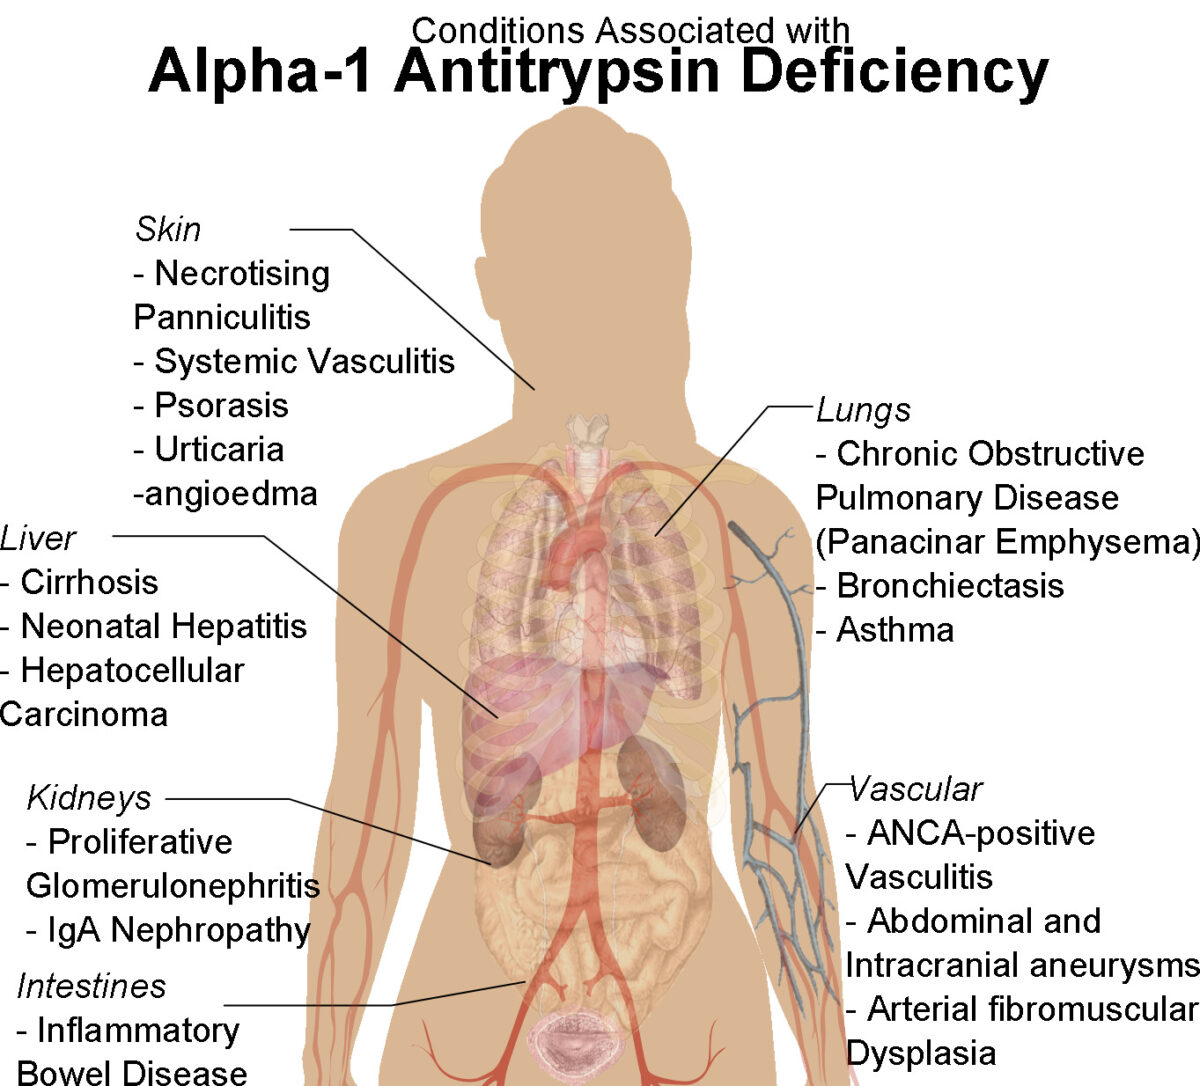 Human female shadow diagram with conditions associated with Alpha-1 Antitrypsin Deficiency Alpha-1 antitrypsin deficiency